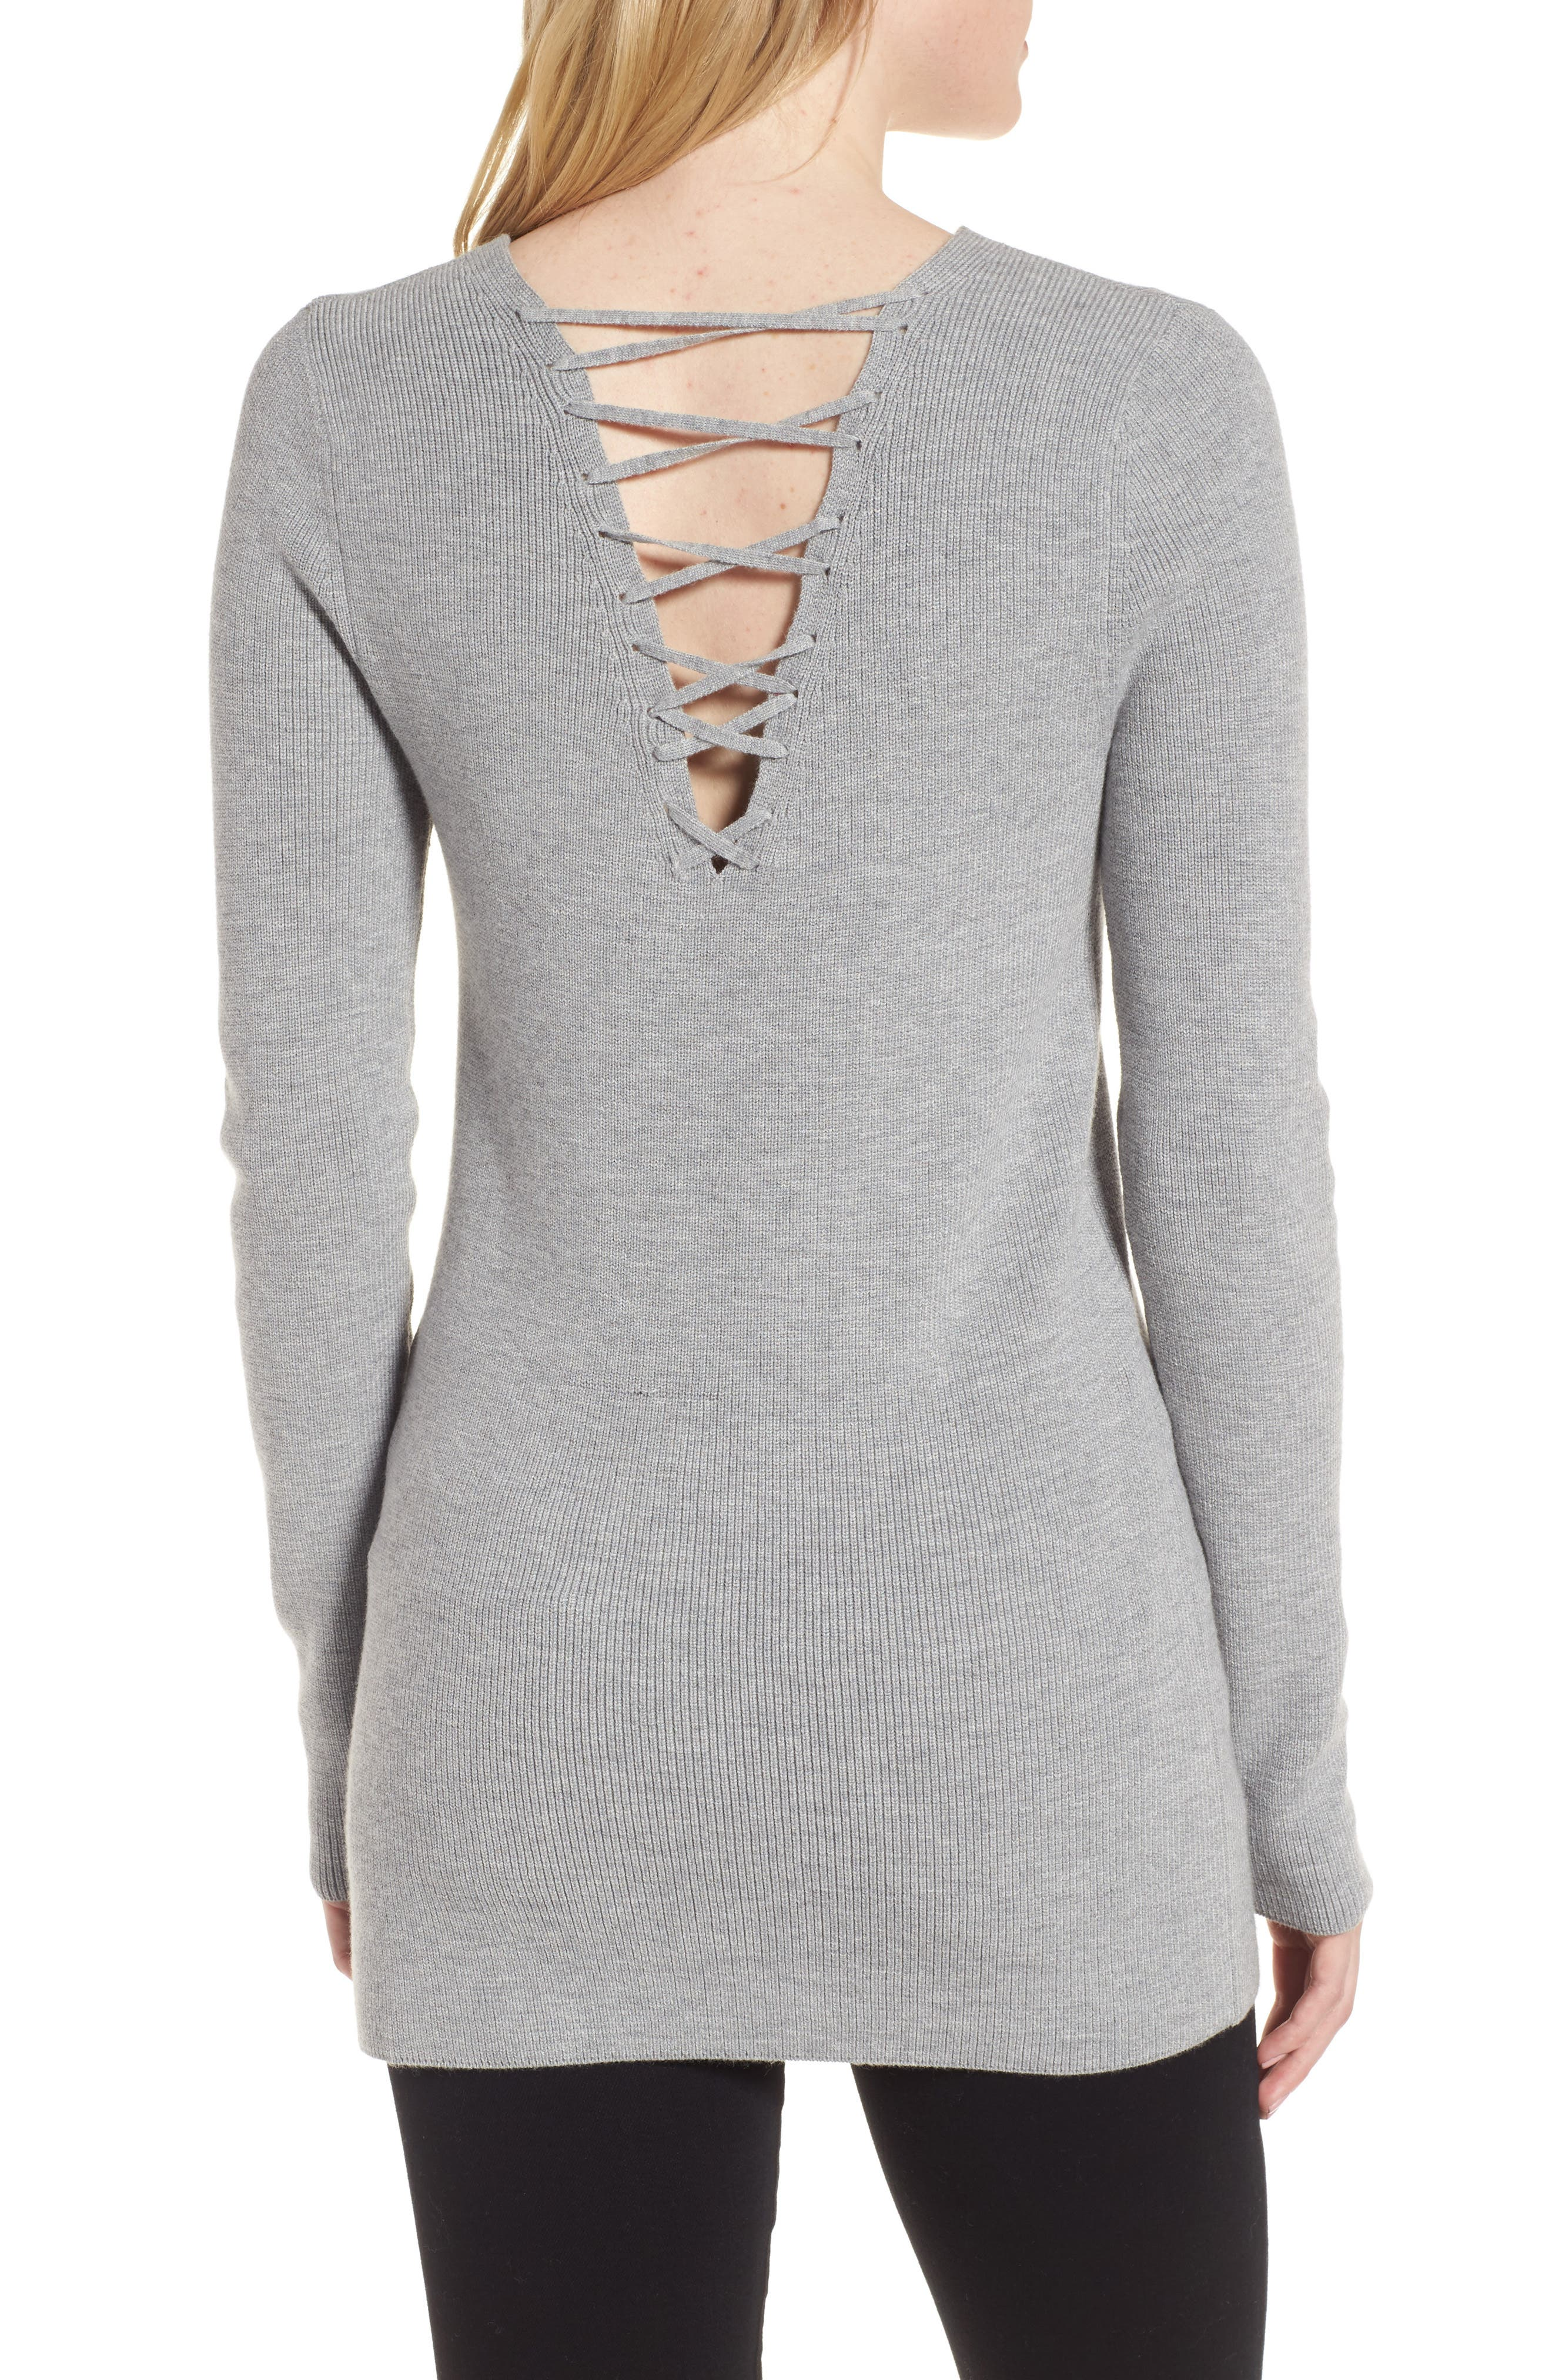 Lace-Up Back Sweater,                             Alternate thumbnail 2, color,                             030